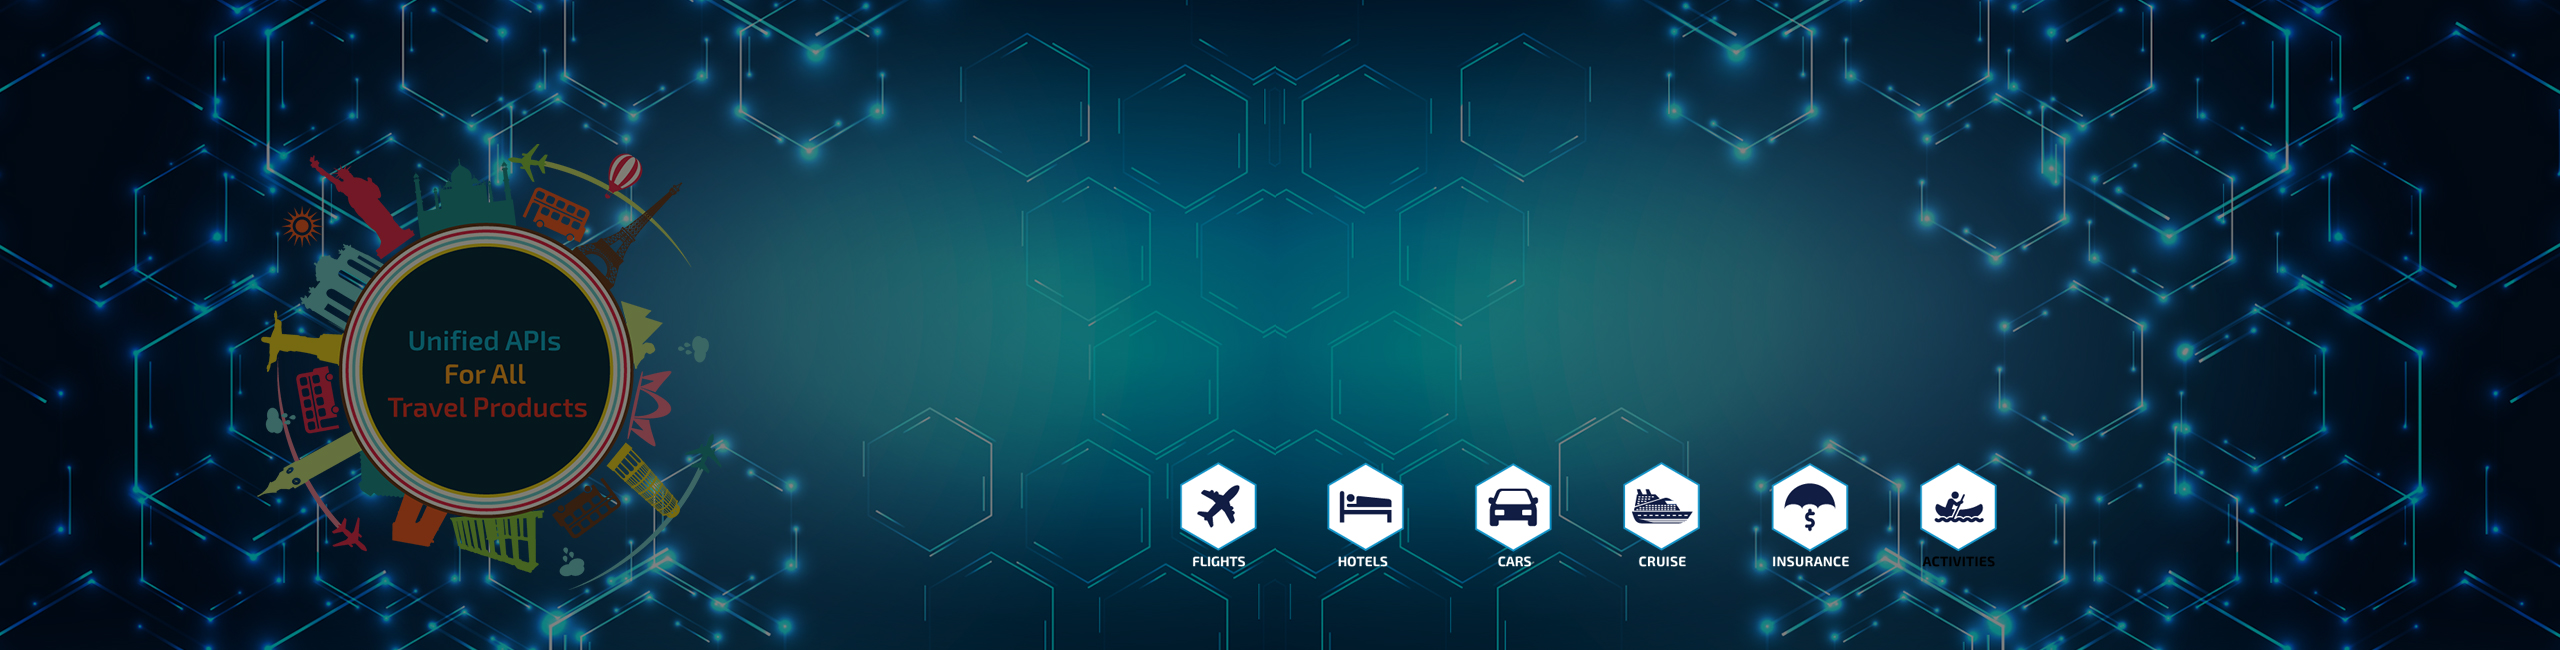 Accessone: Unified APIs For All Travel Products